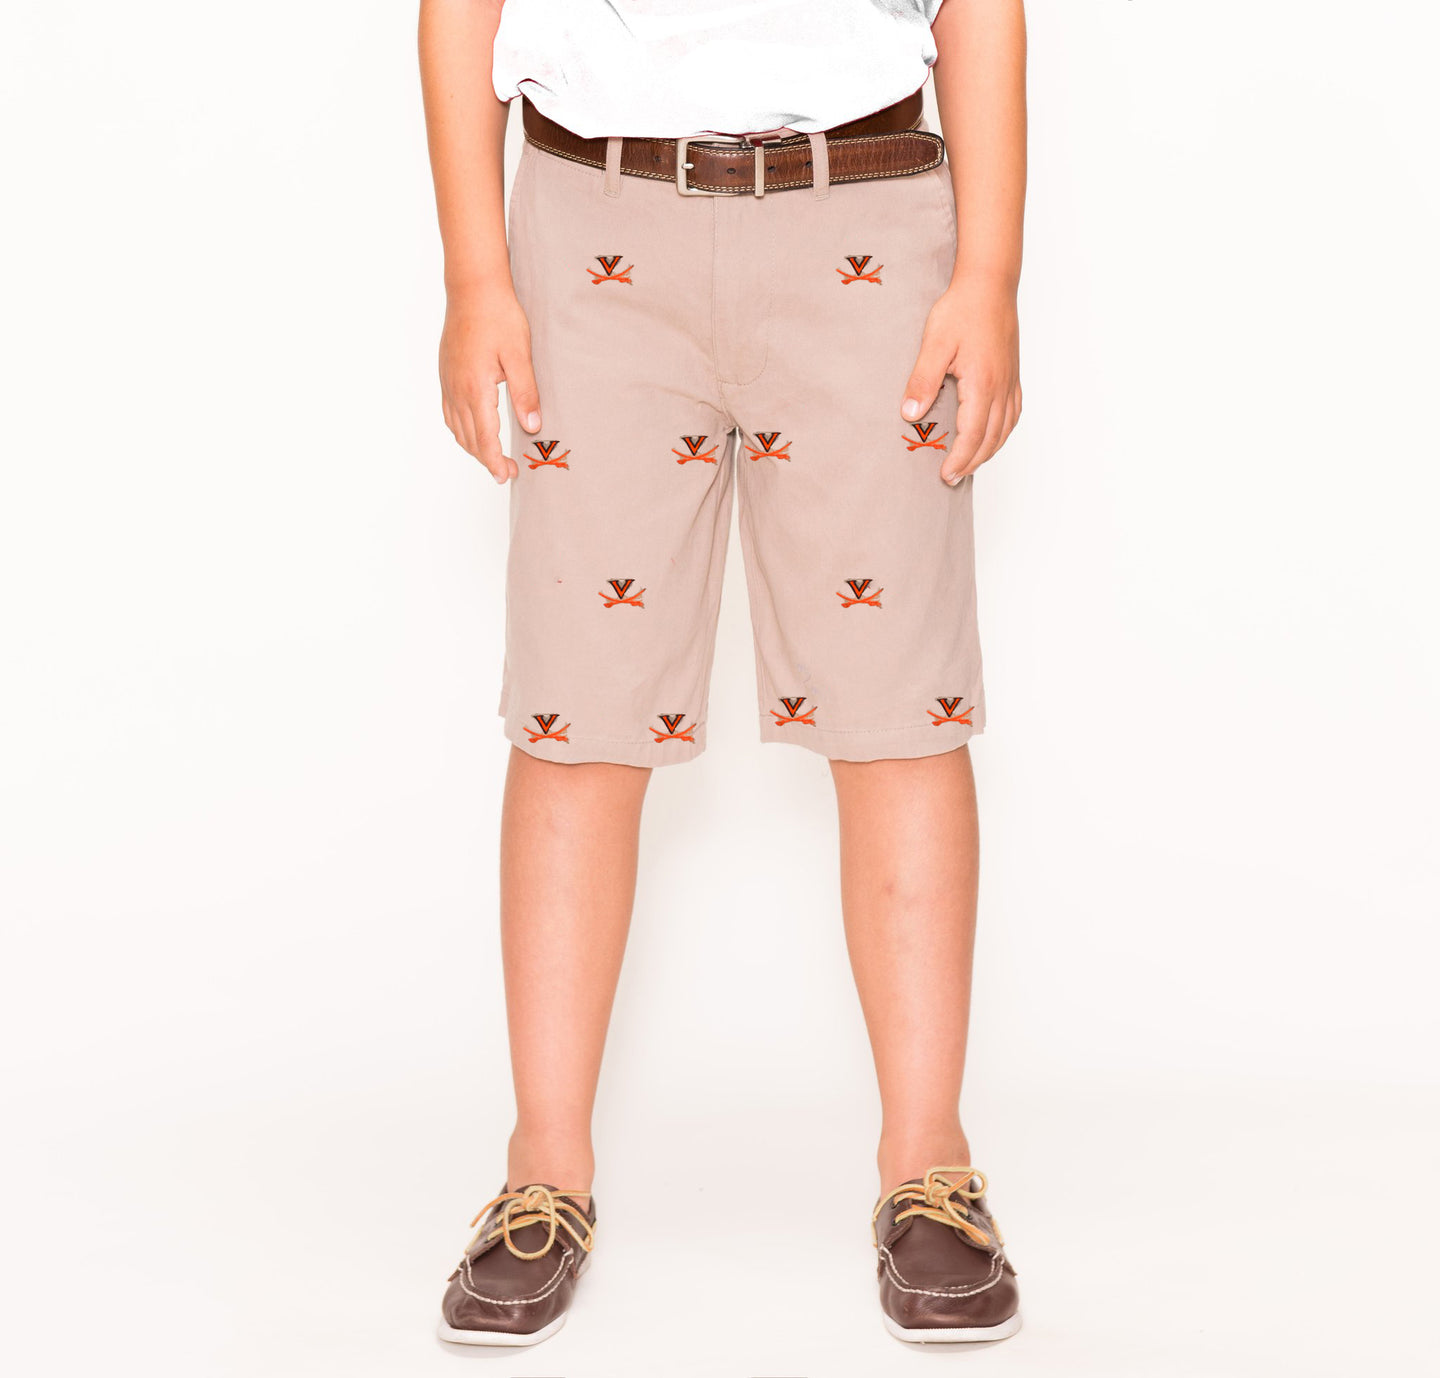 Virginia Boy's Stadium Short Khaki